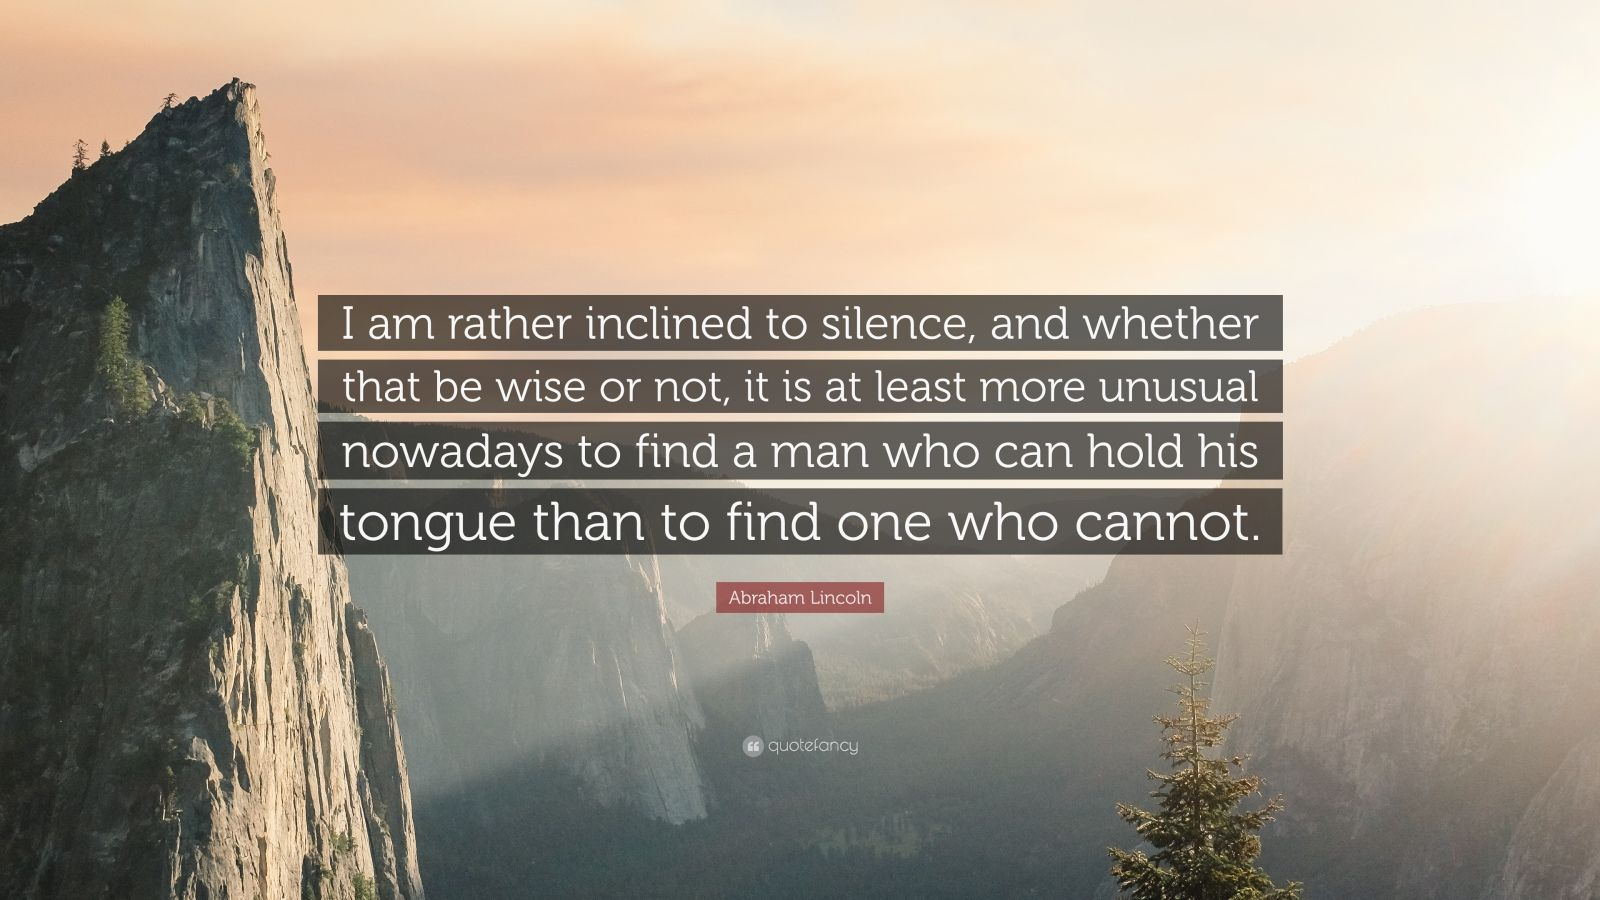 """Abraham Lincoln Quote: """"I am rather inclined to silence, and whether that be wise or not, it is at least more unusual nowadays to find a man who can hold his tongue than to find one who cannot."""""""